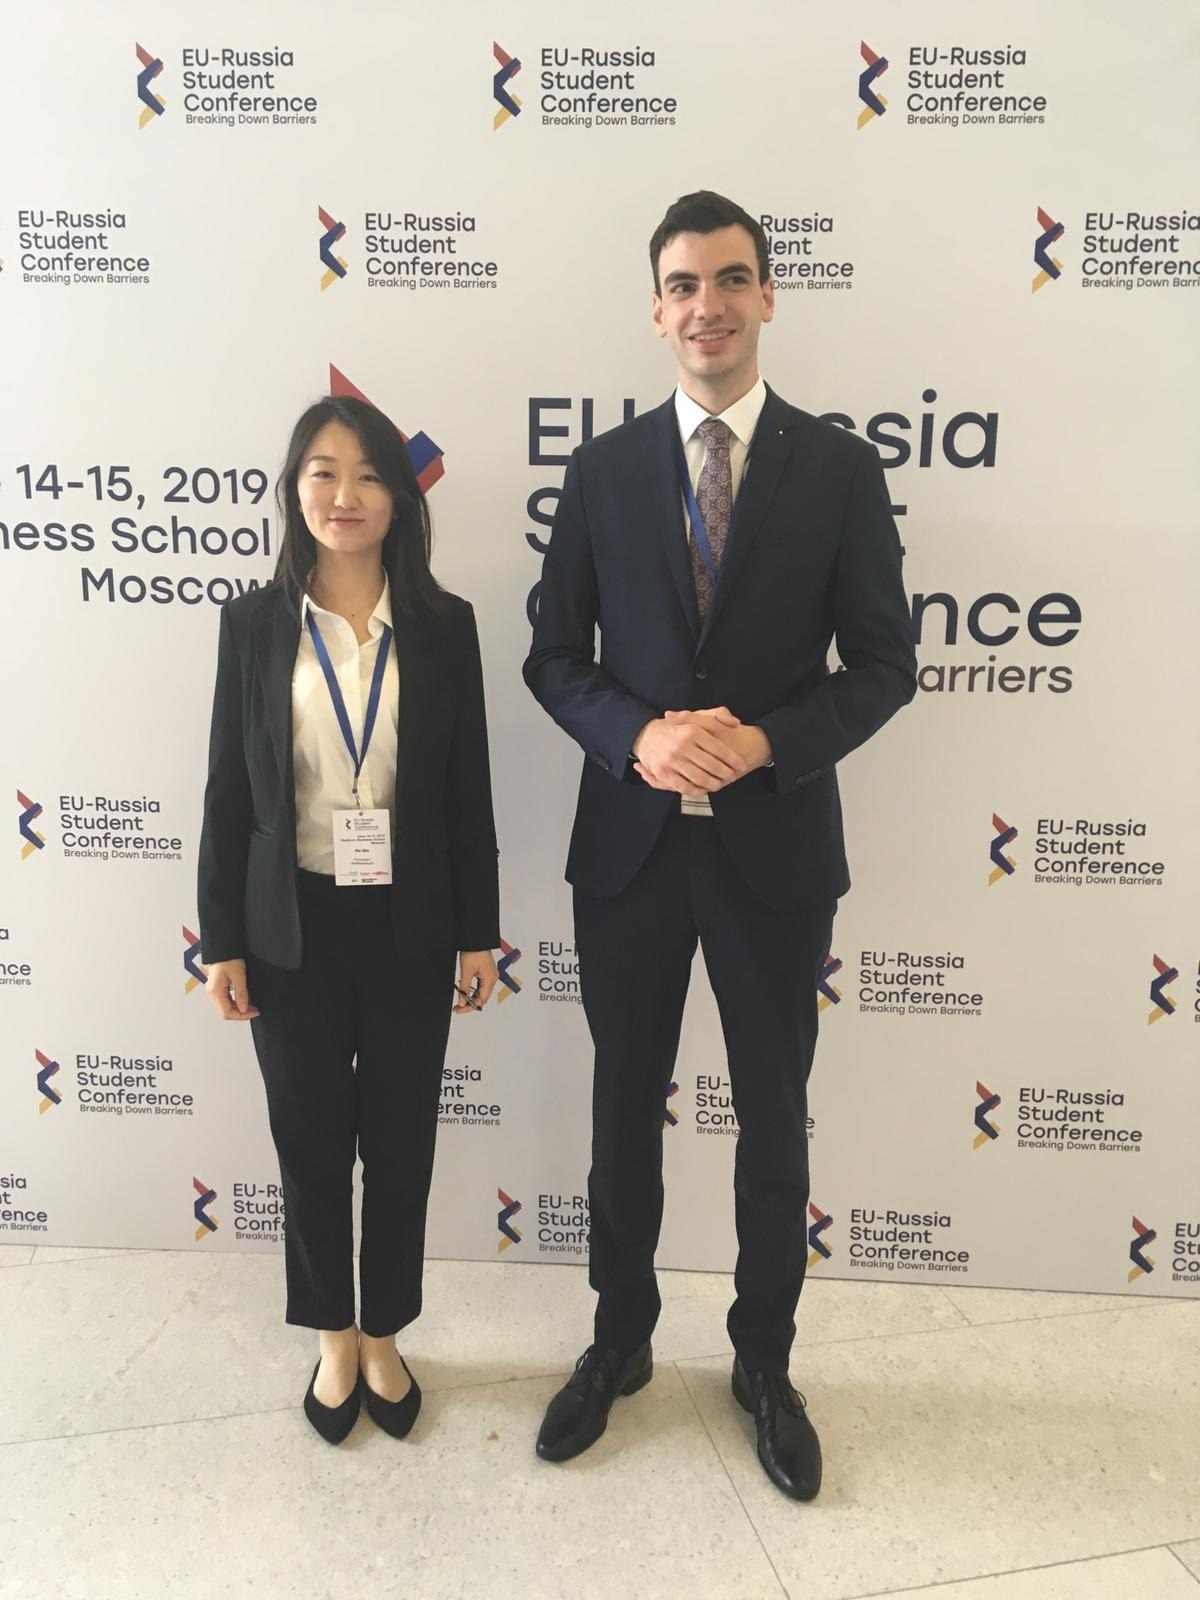 Qin He & Welter Lennart at EU-Russia Conference